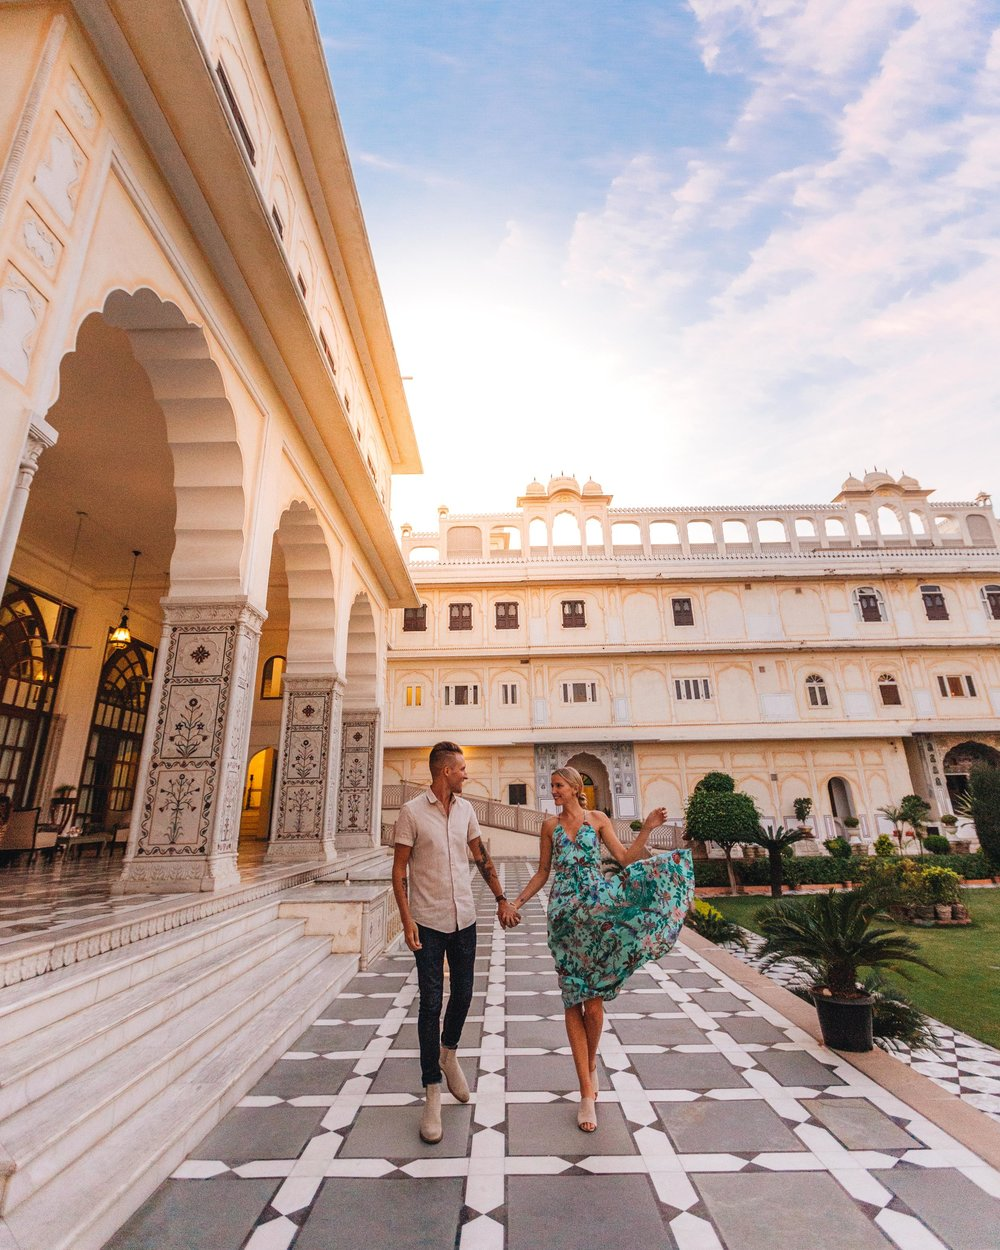 LEAGUE TRAVELS X RAJ PALACE-22.jpg